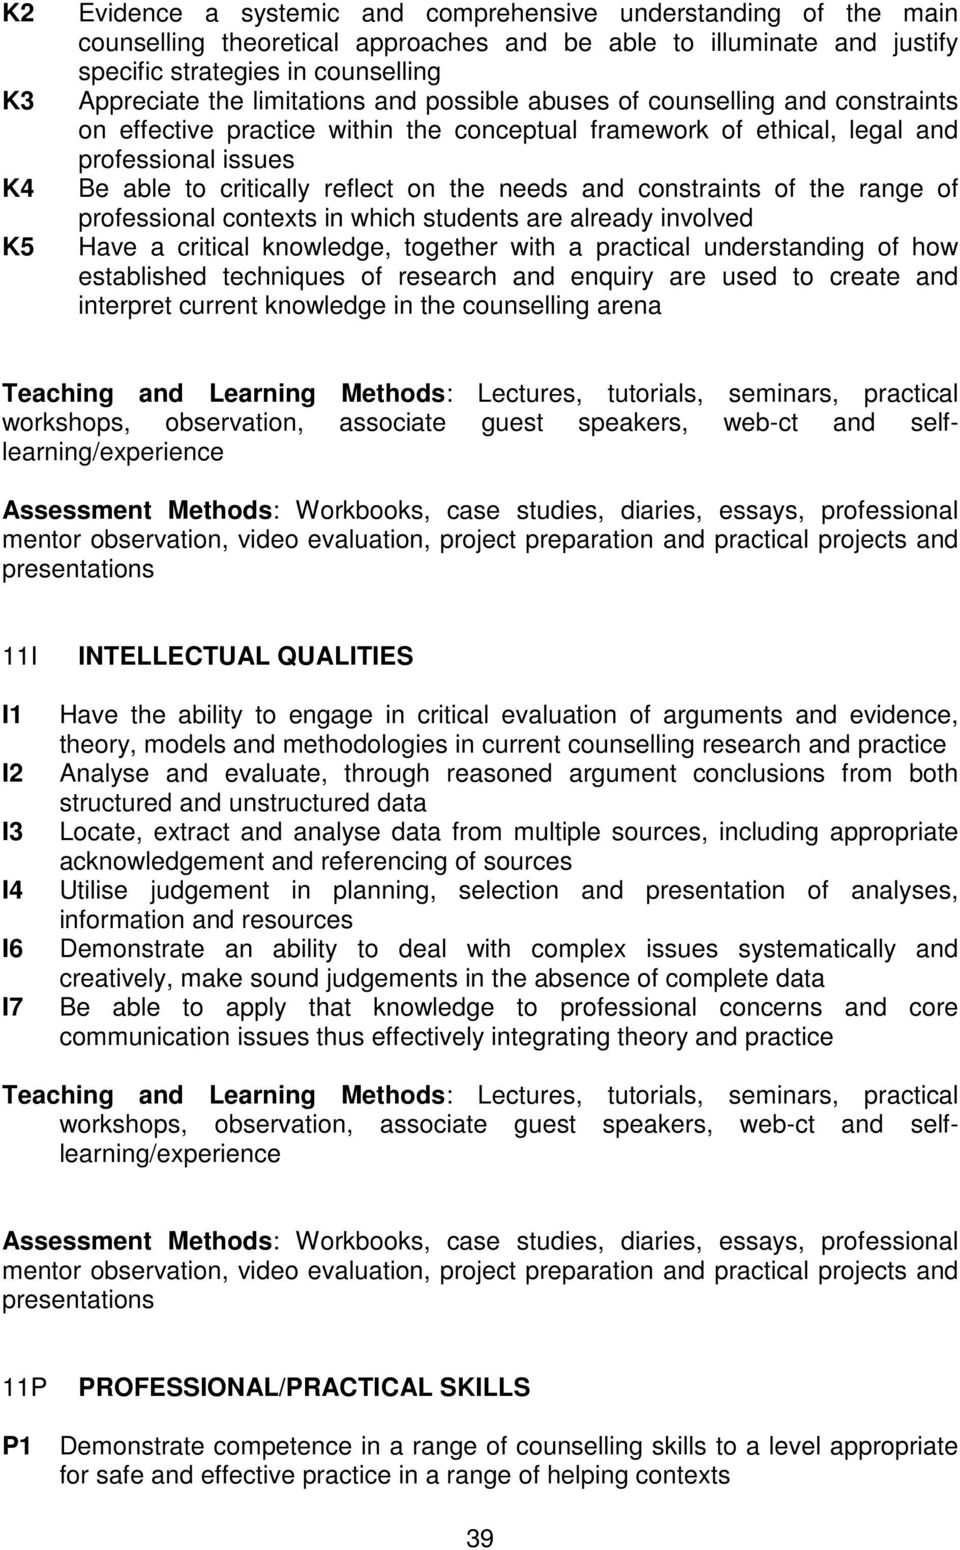 needs and constraints of the range of professional contexts in which students are already involved Have a critical knowledge, together with a practical understanding of how established techniques of